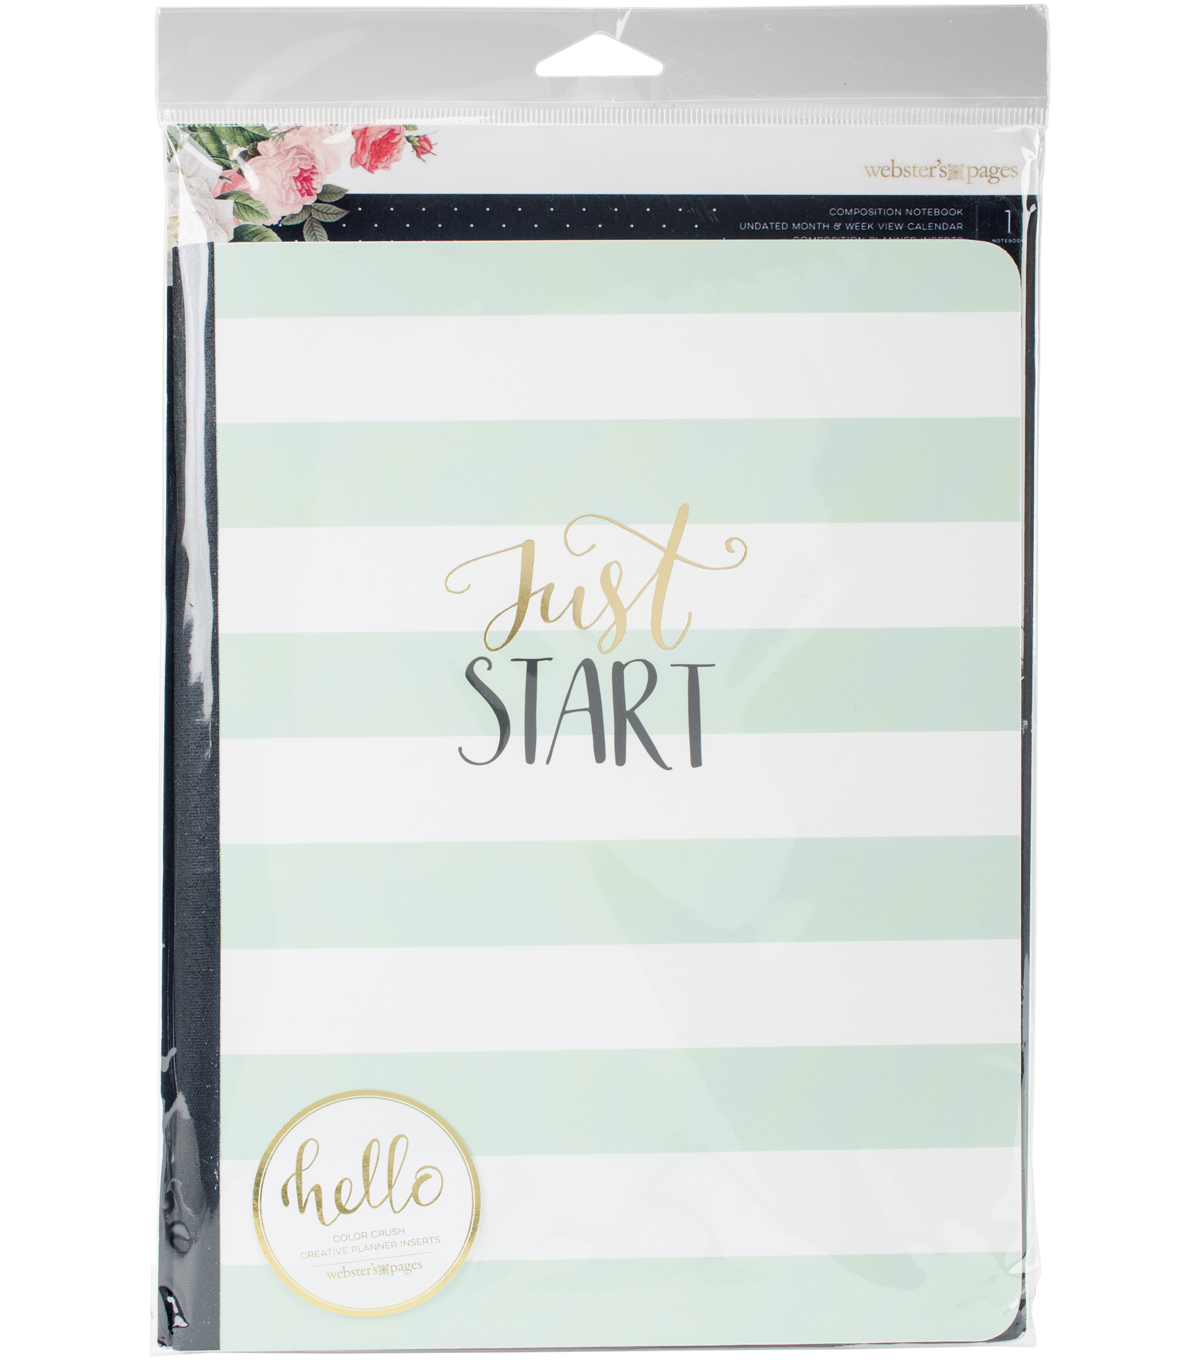 Composition Planner Notebook 7.5\u0022X9.7\u0022-Just Start Undated Calendar